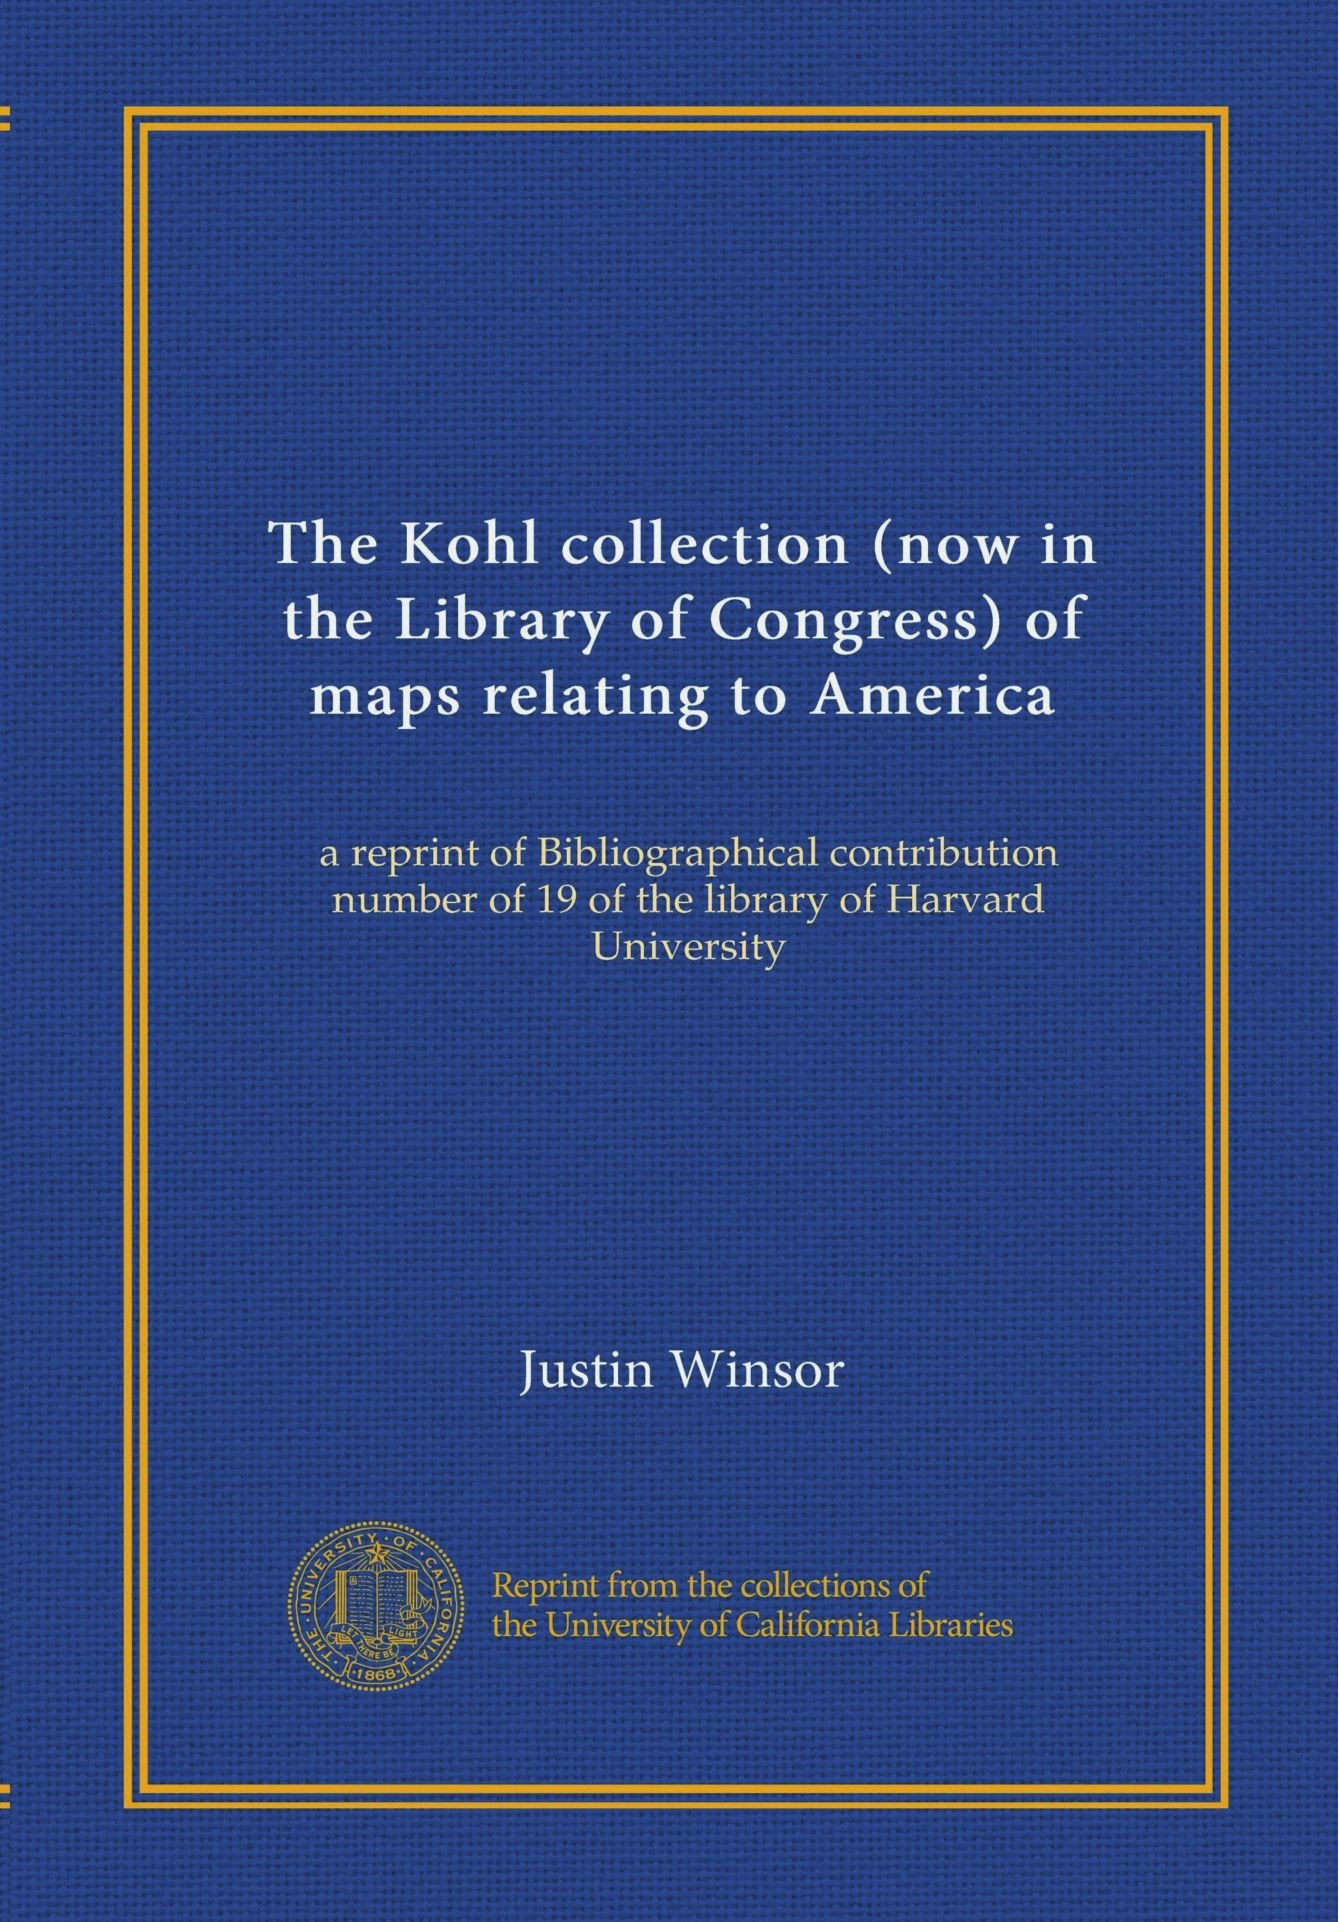 The Kohl collection (now in the Library of Congress) of maps relating to America: a reprint of Bibliographical contribution number of 19 of the library of Harvard University pdf epub